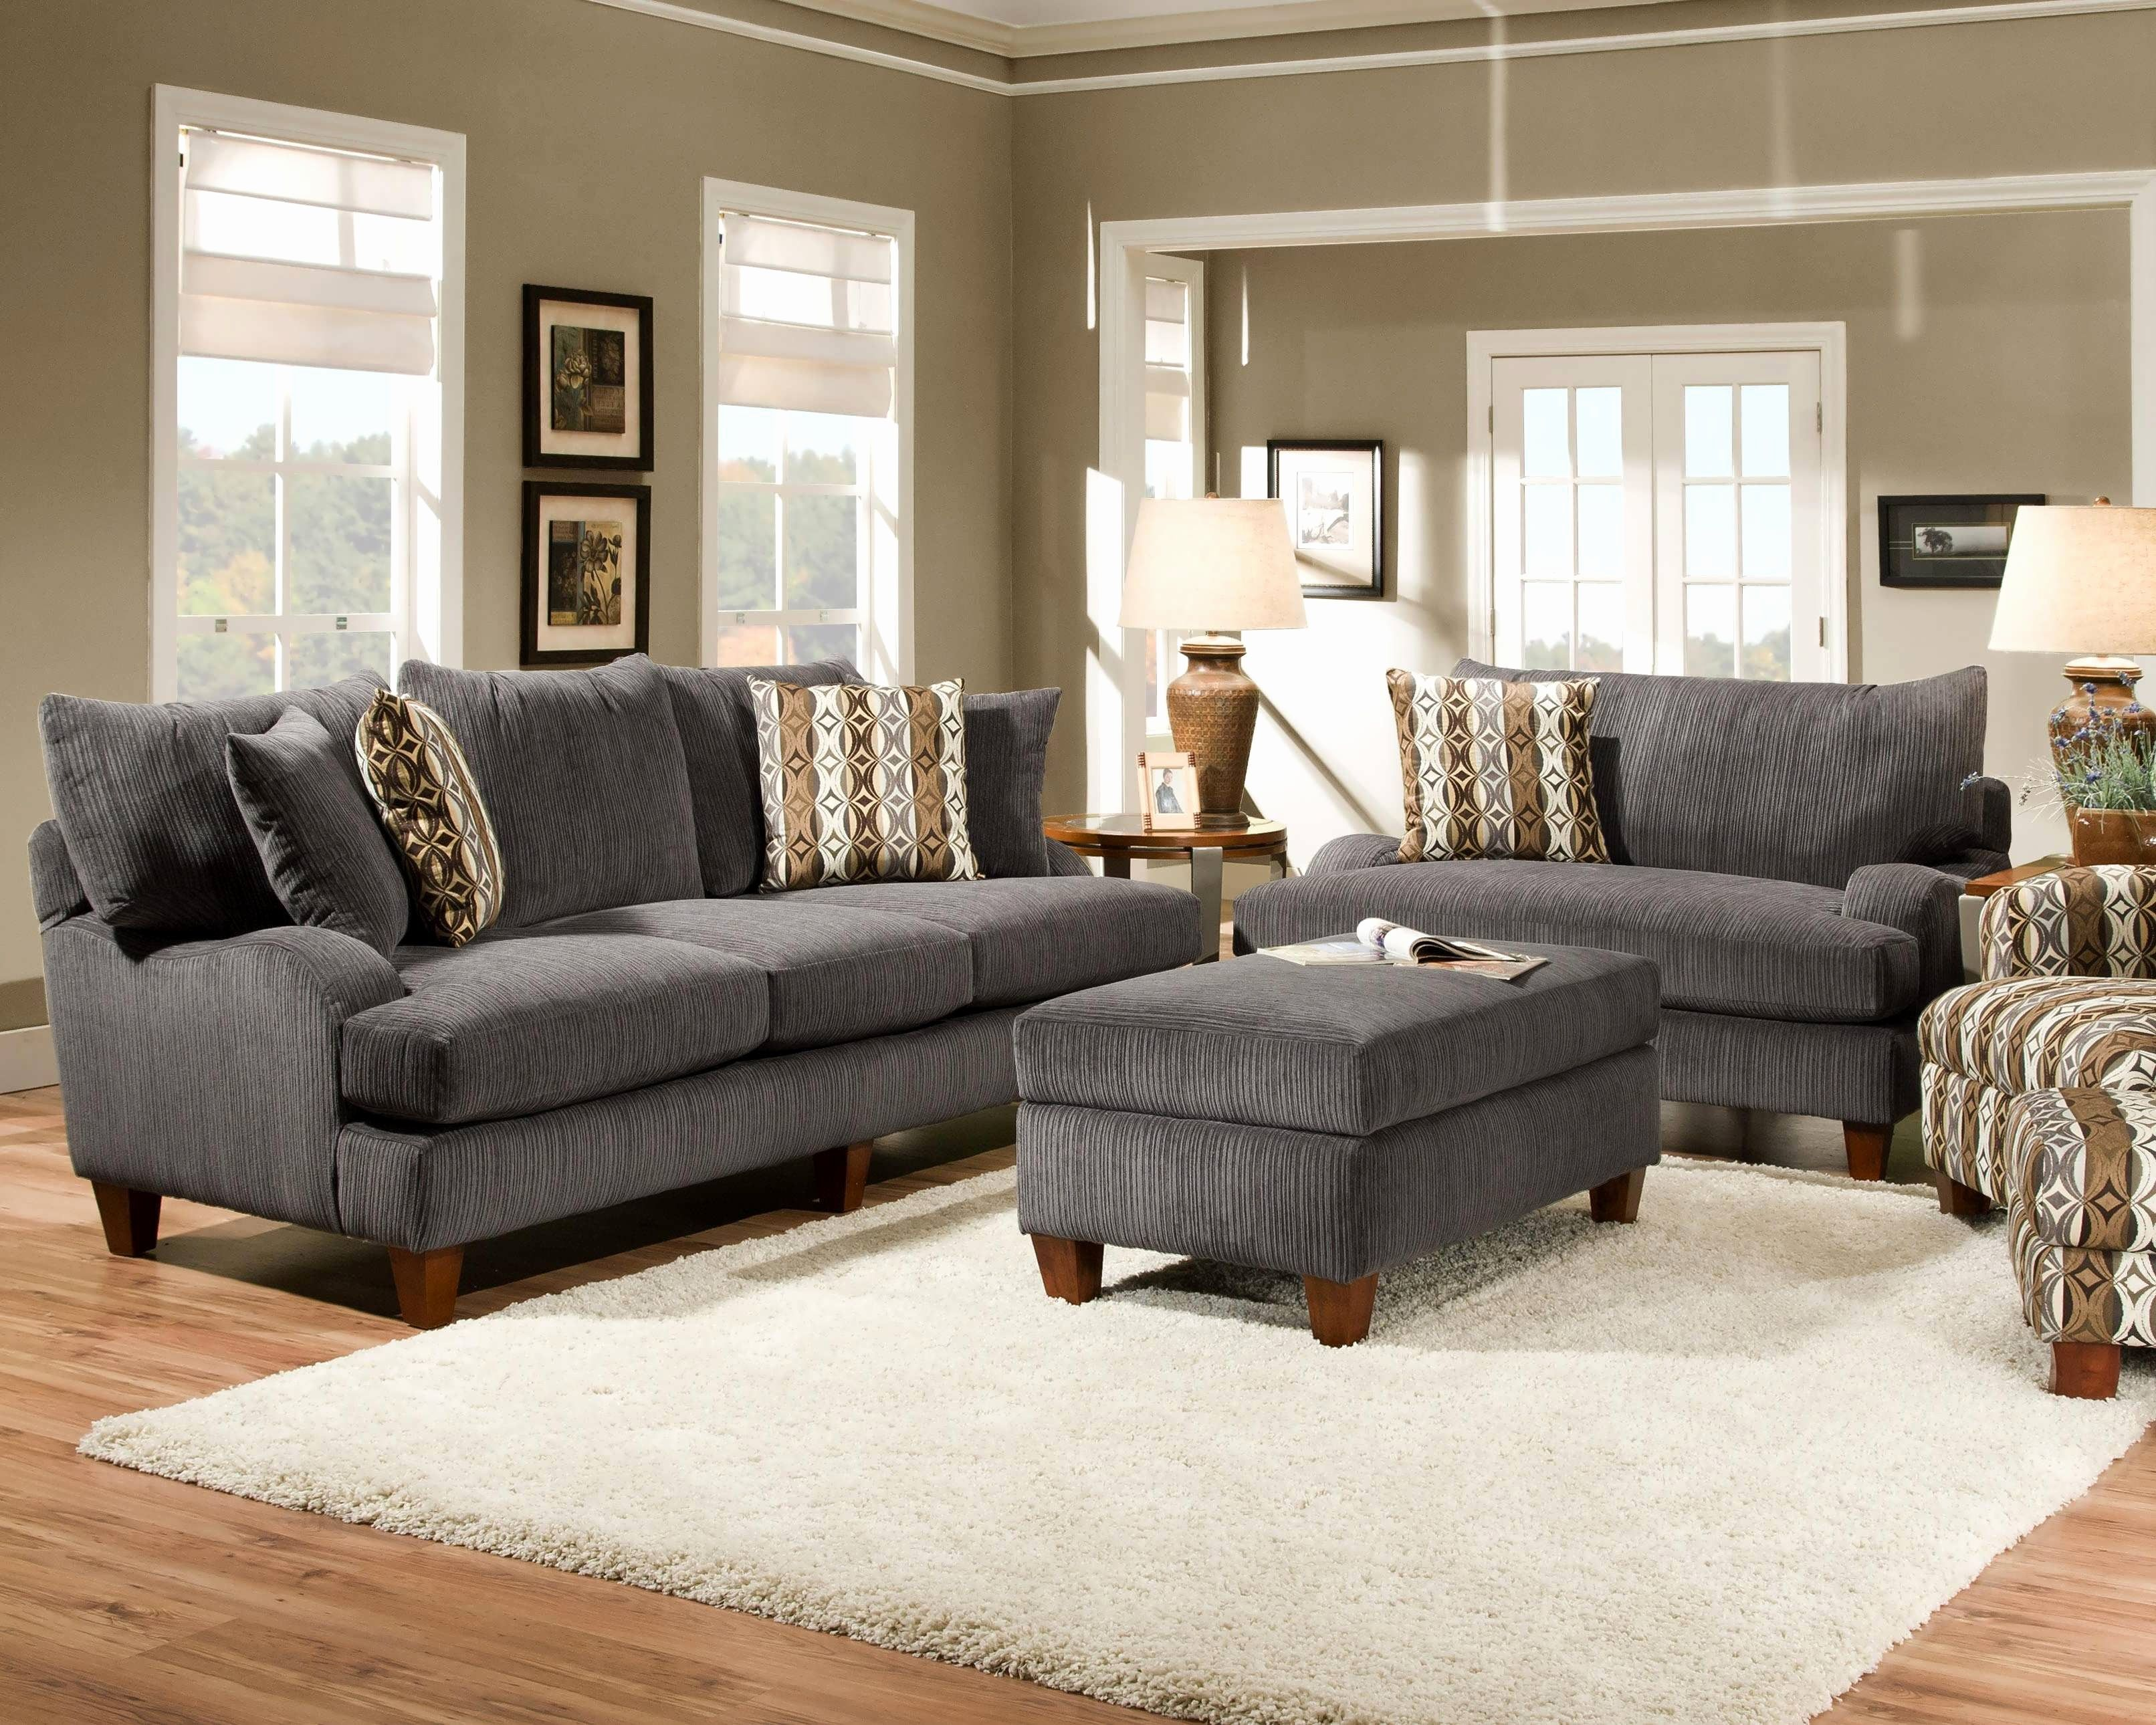 Good sofas Set grapy sofas amazing gray reclining sofa dark